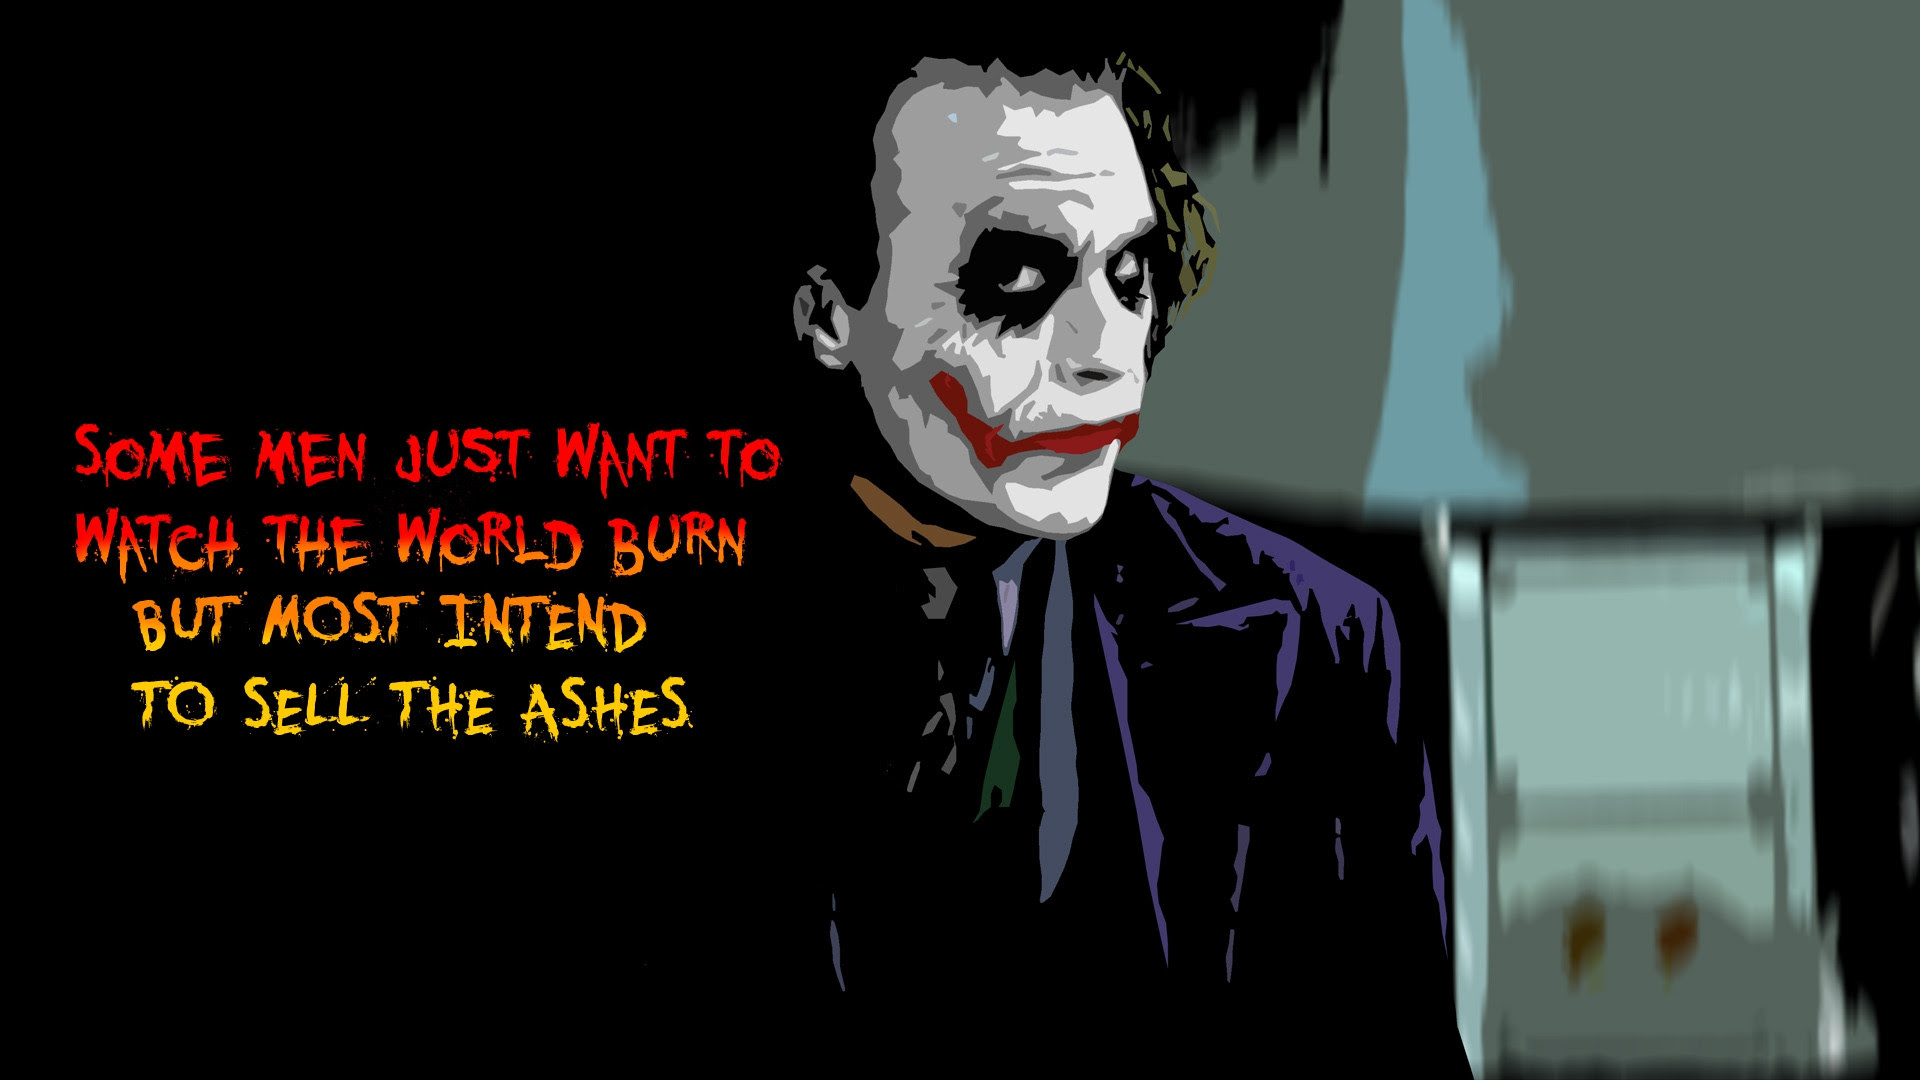 The Wise Joker 1920x1080 Quotesporn